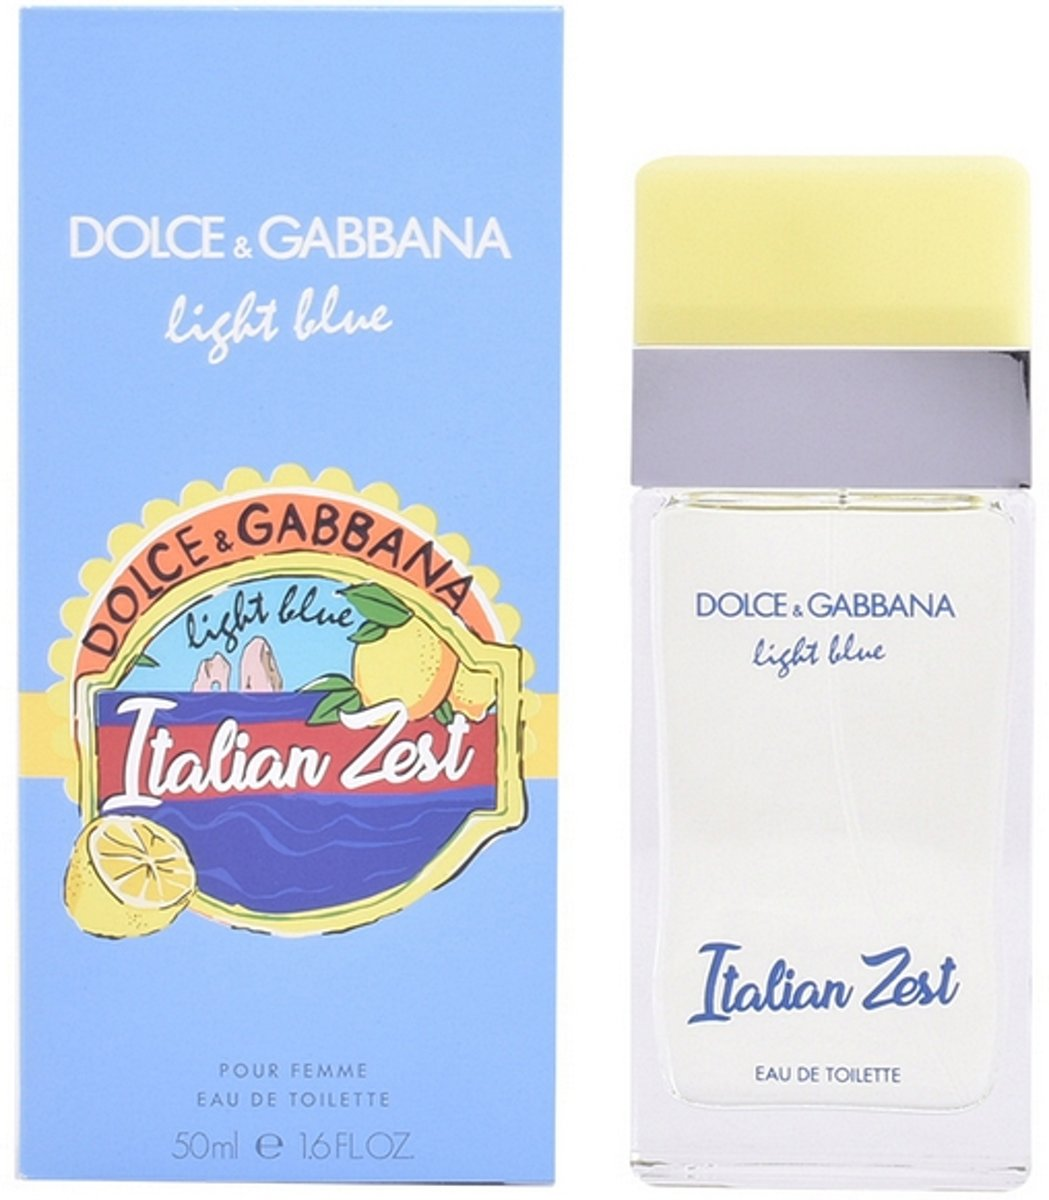 Dolce & Gabbana. Light Blue Italian Zest Eau de Toilette Spray 100 ml